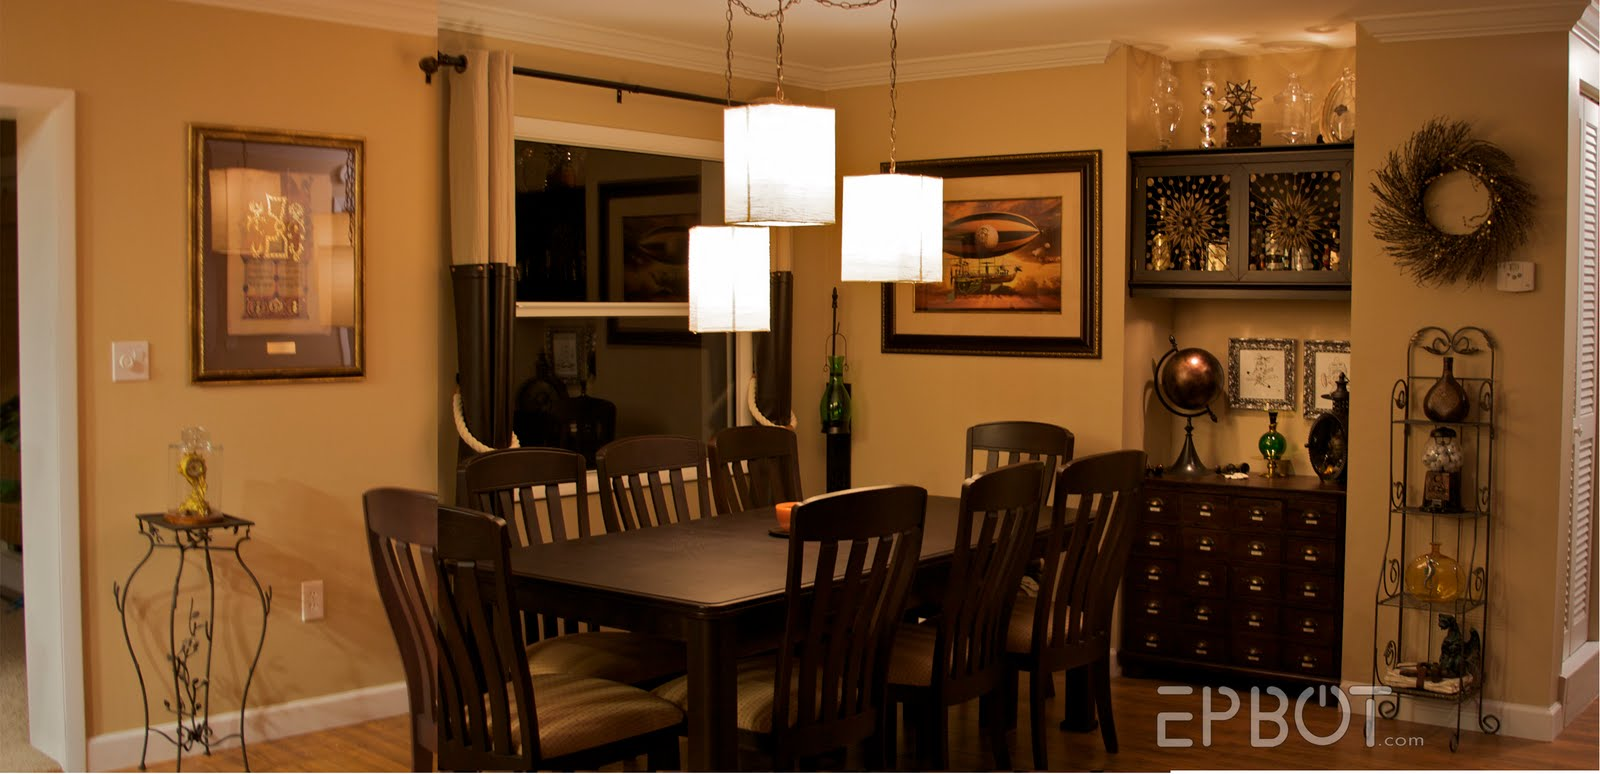 EPBOT: My Steampunk Dining Room